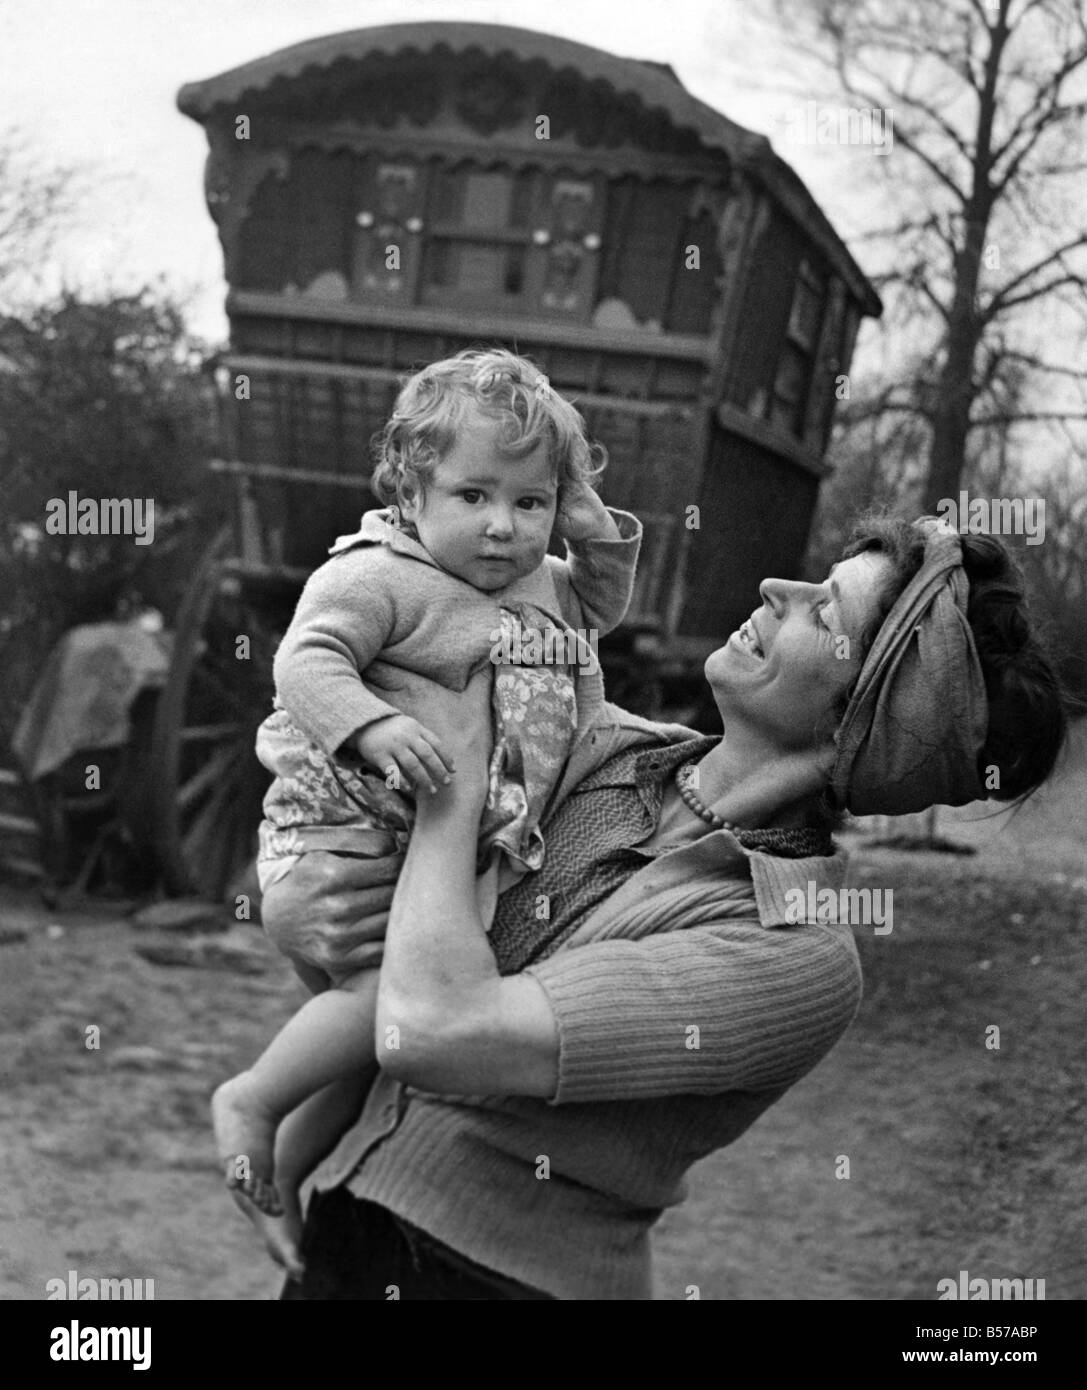 Gypsy woman with child pose outside their caravan.  July 1944 P007205 - Stock Image